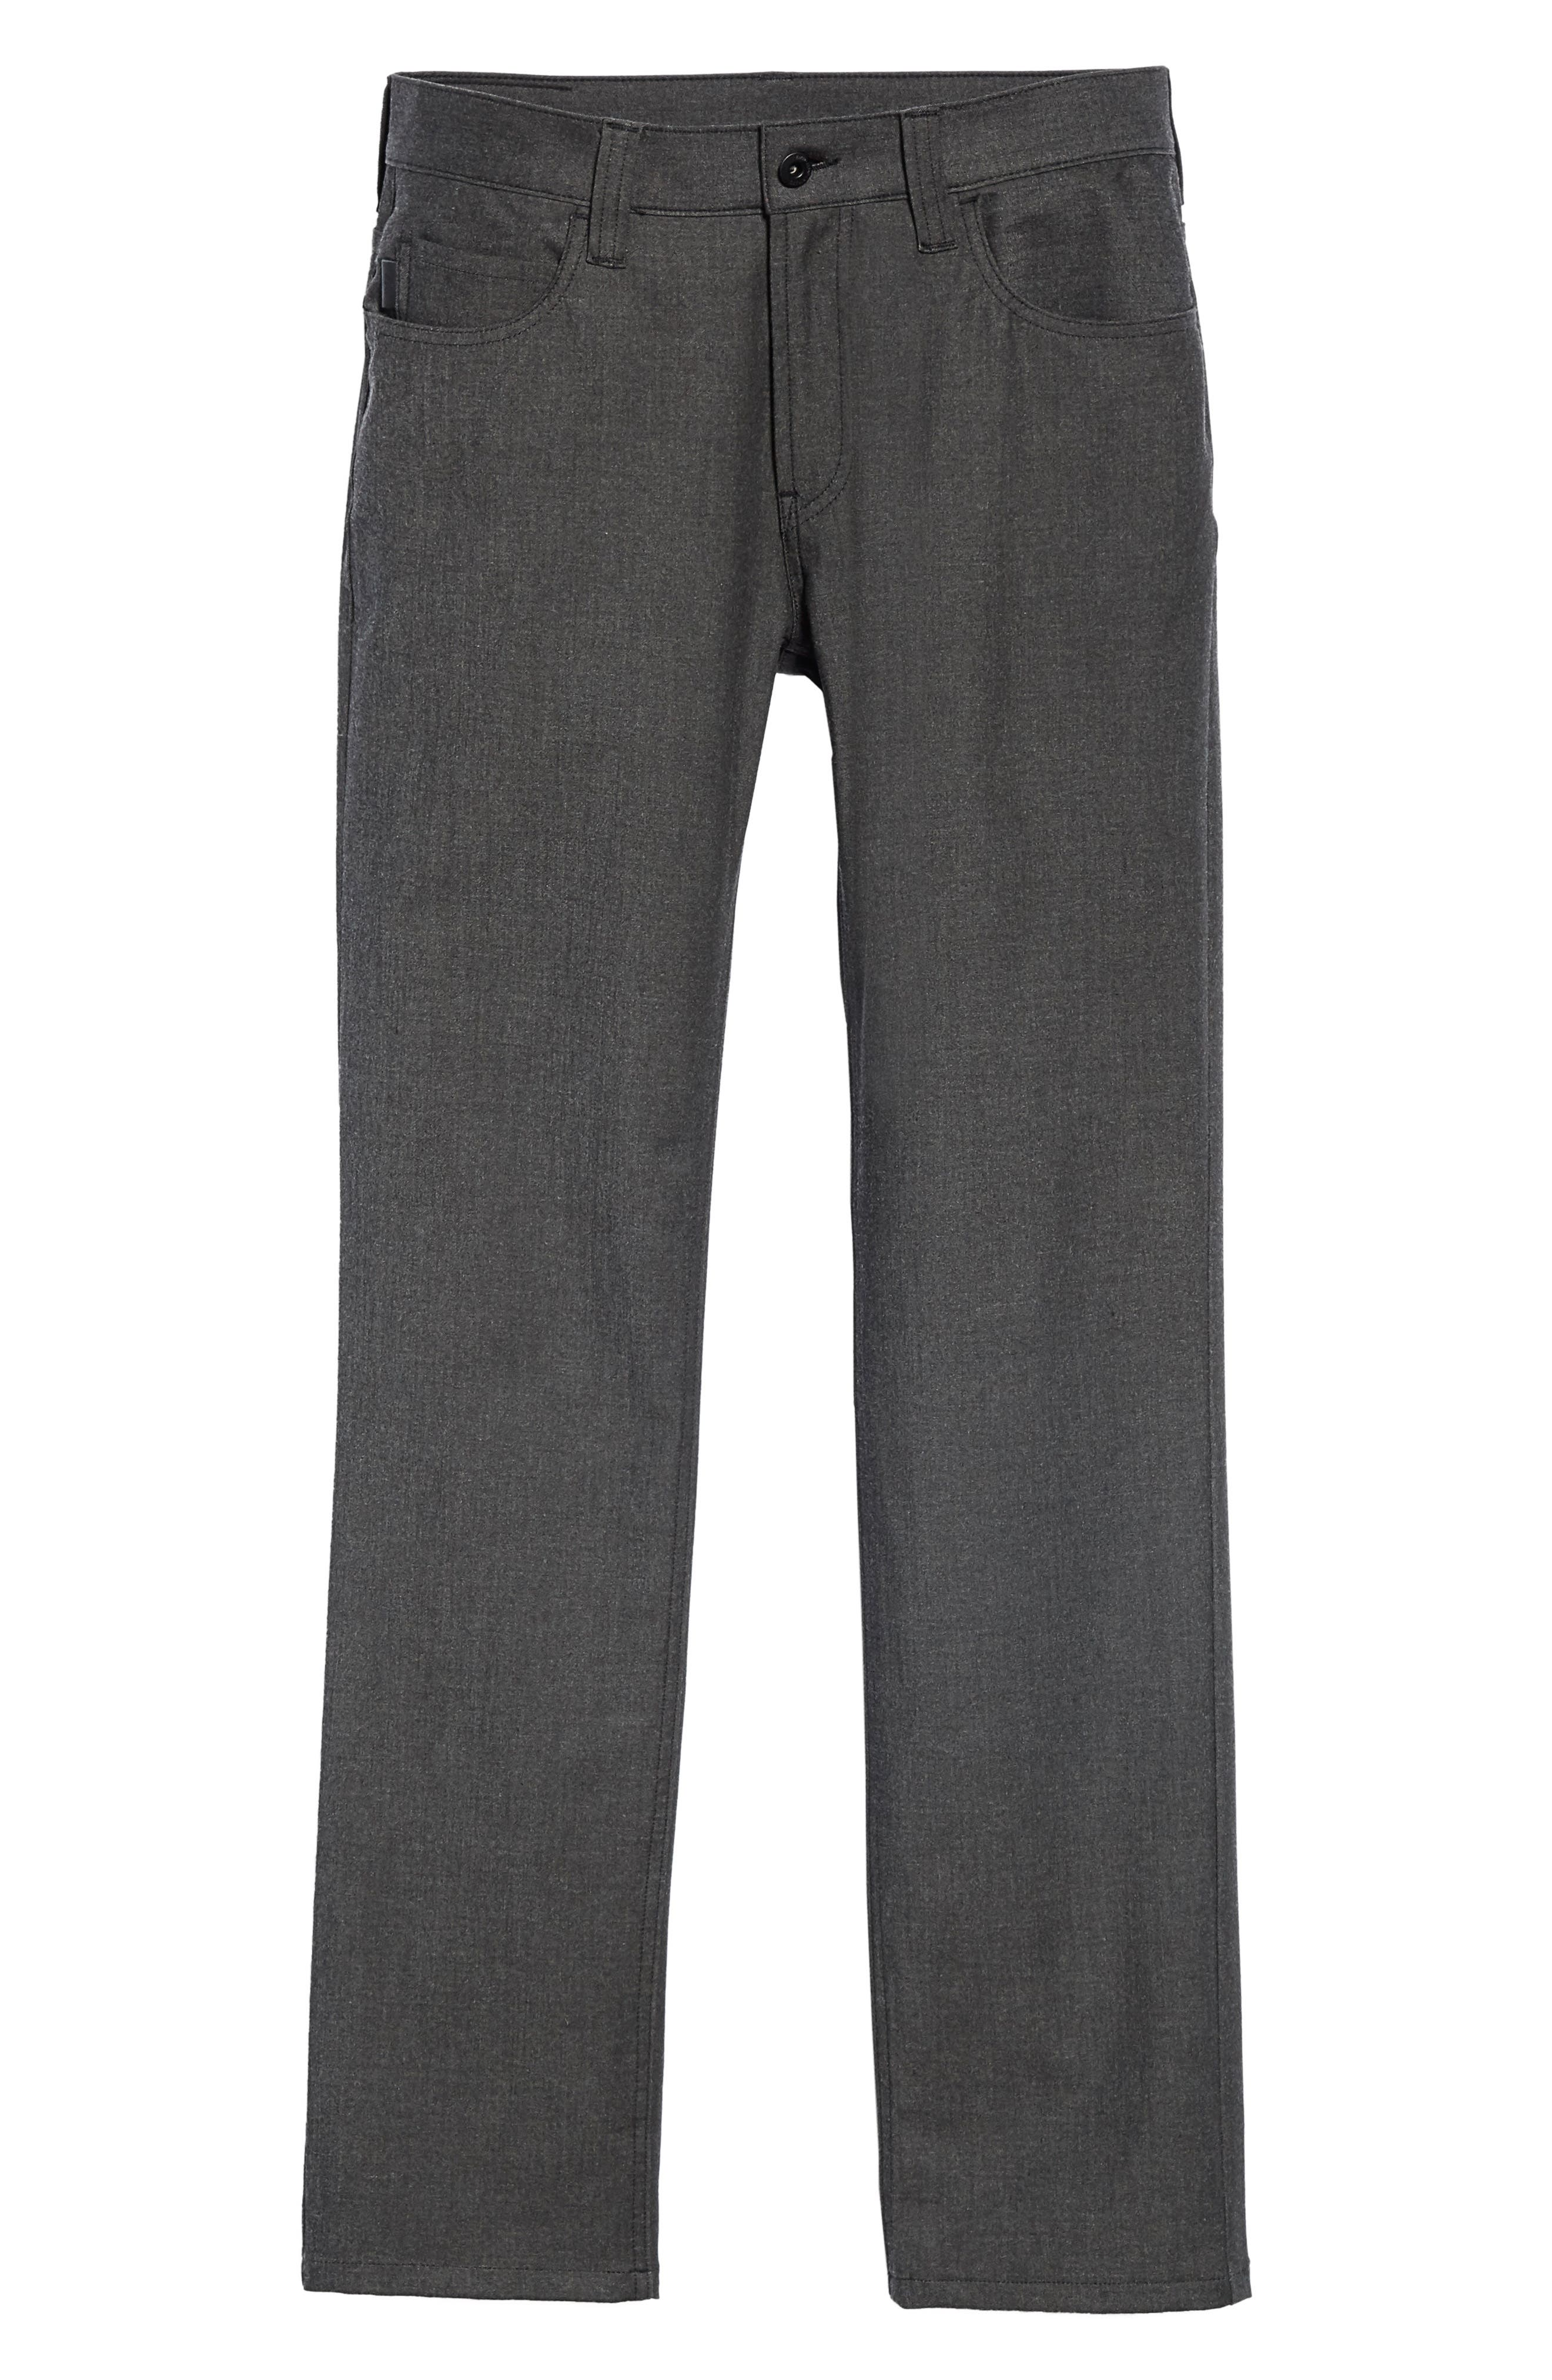 Flat Front Five Pocket Trousers,                             Alternate thumbnail 6, color,                             CHARCOAL